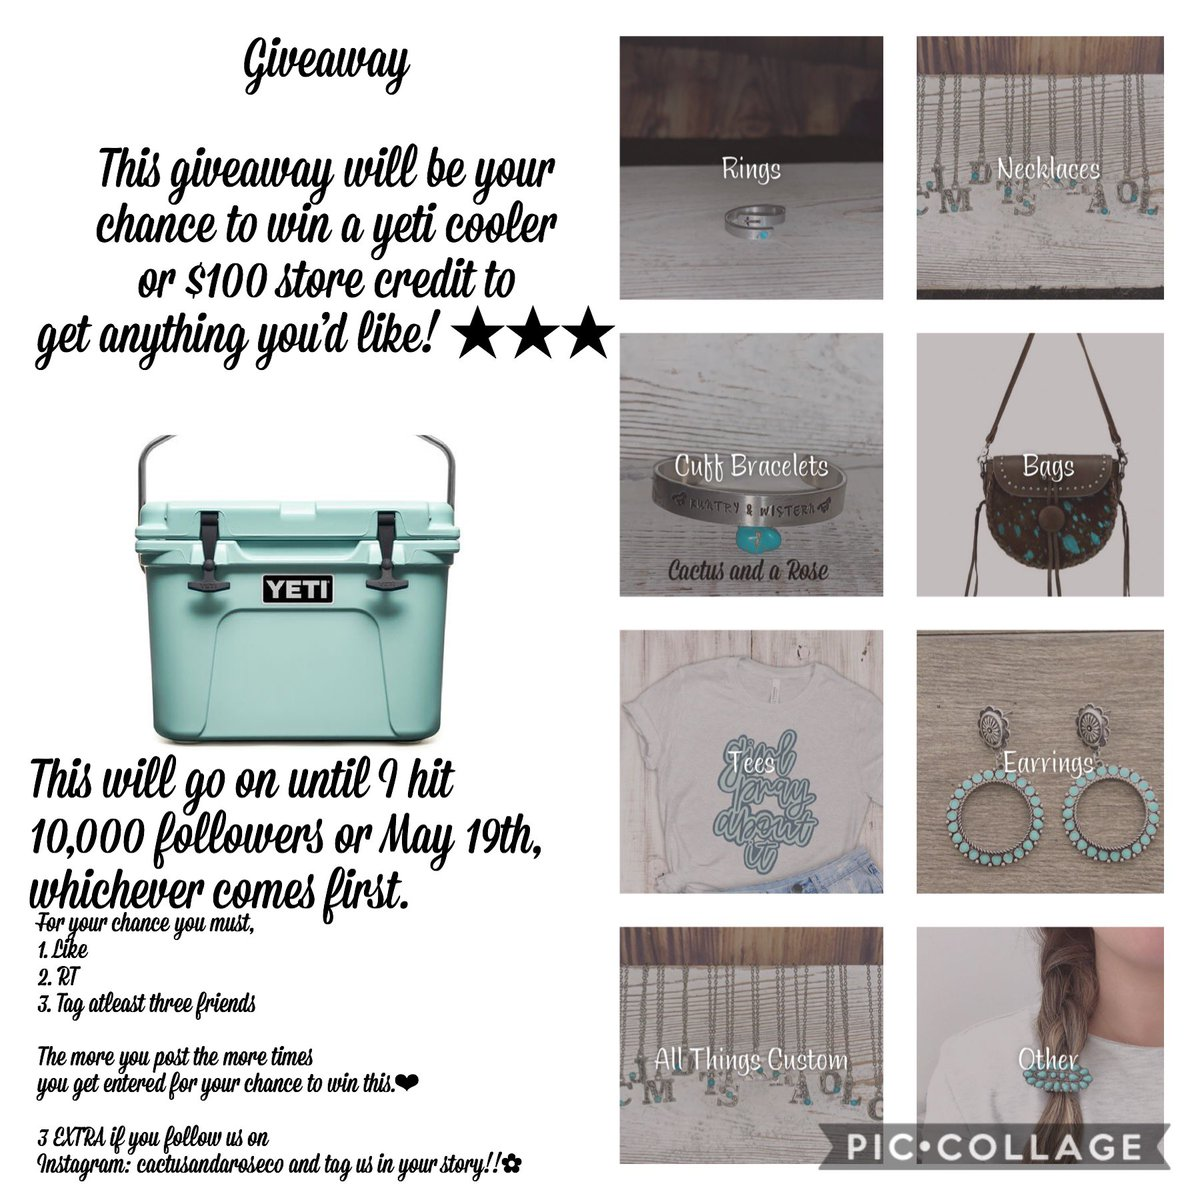 GIVEAWAY!! ツツ For your chance you must,  1. Like  2. RT 3. Tag atleast three friends  The more you post the more times  you get entered for your chance to win this.❤︎  3 EXTRA if you follow us on  Instagram: cactusandaroseco and tag us in your story!!✿